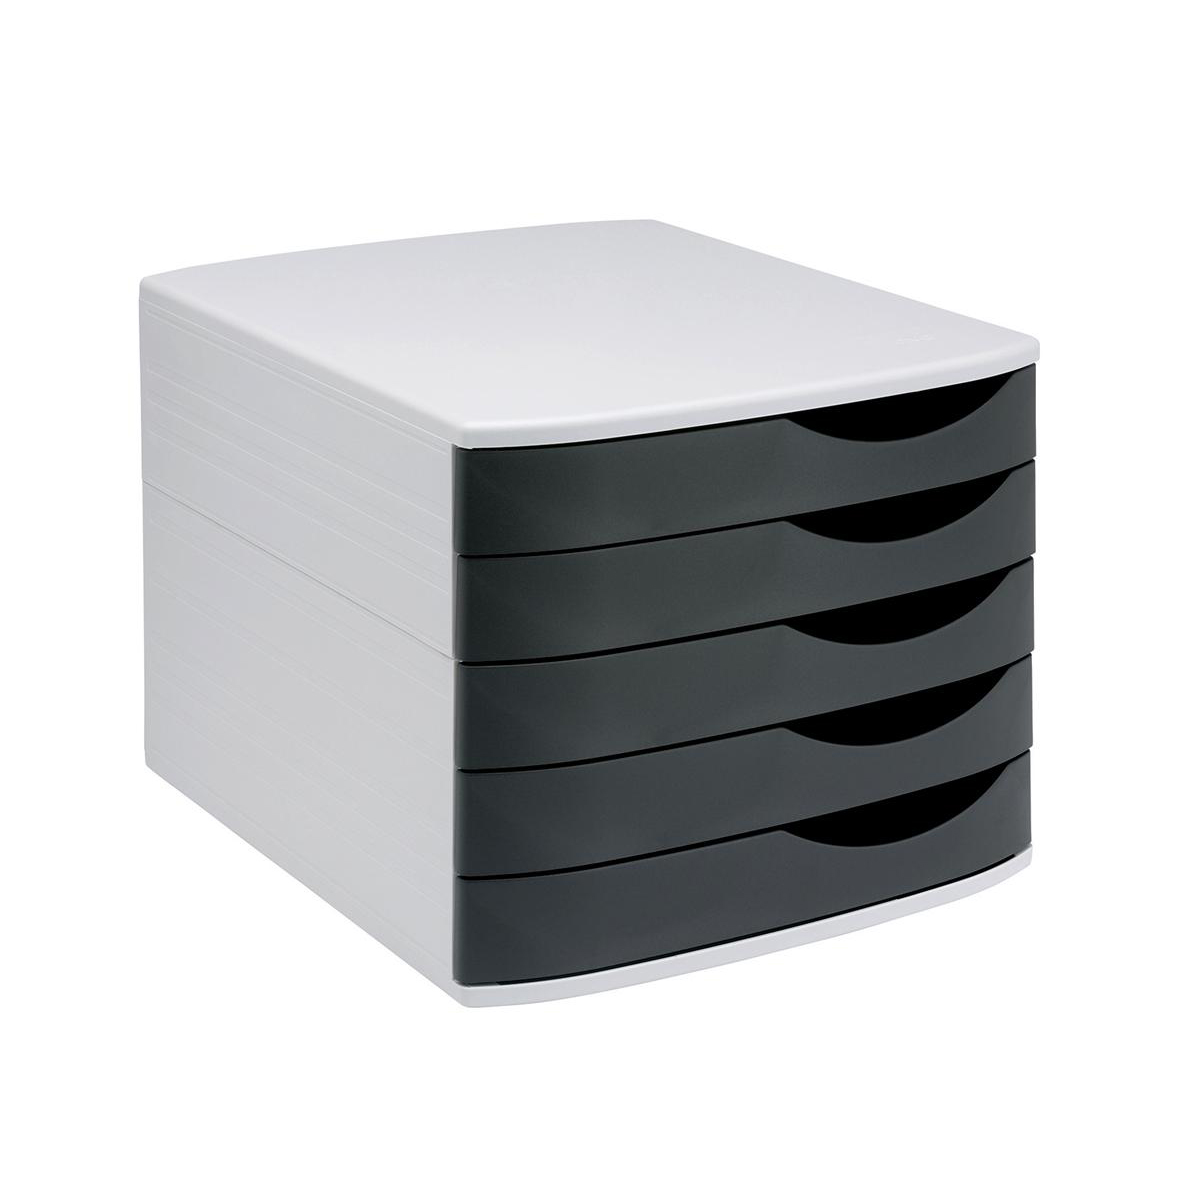 5 Star Elite Desktop Drawer Set 5 Drawers A4 & Documents up to 260x350mm Grey/Black